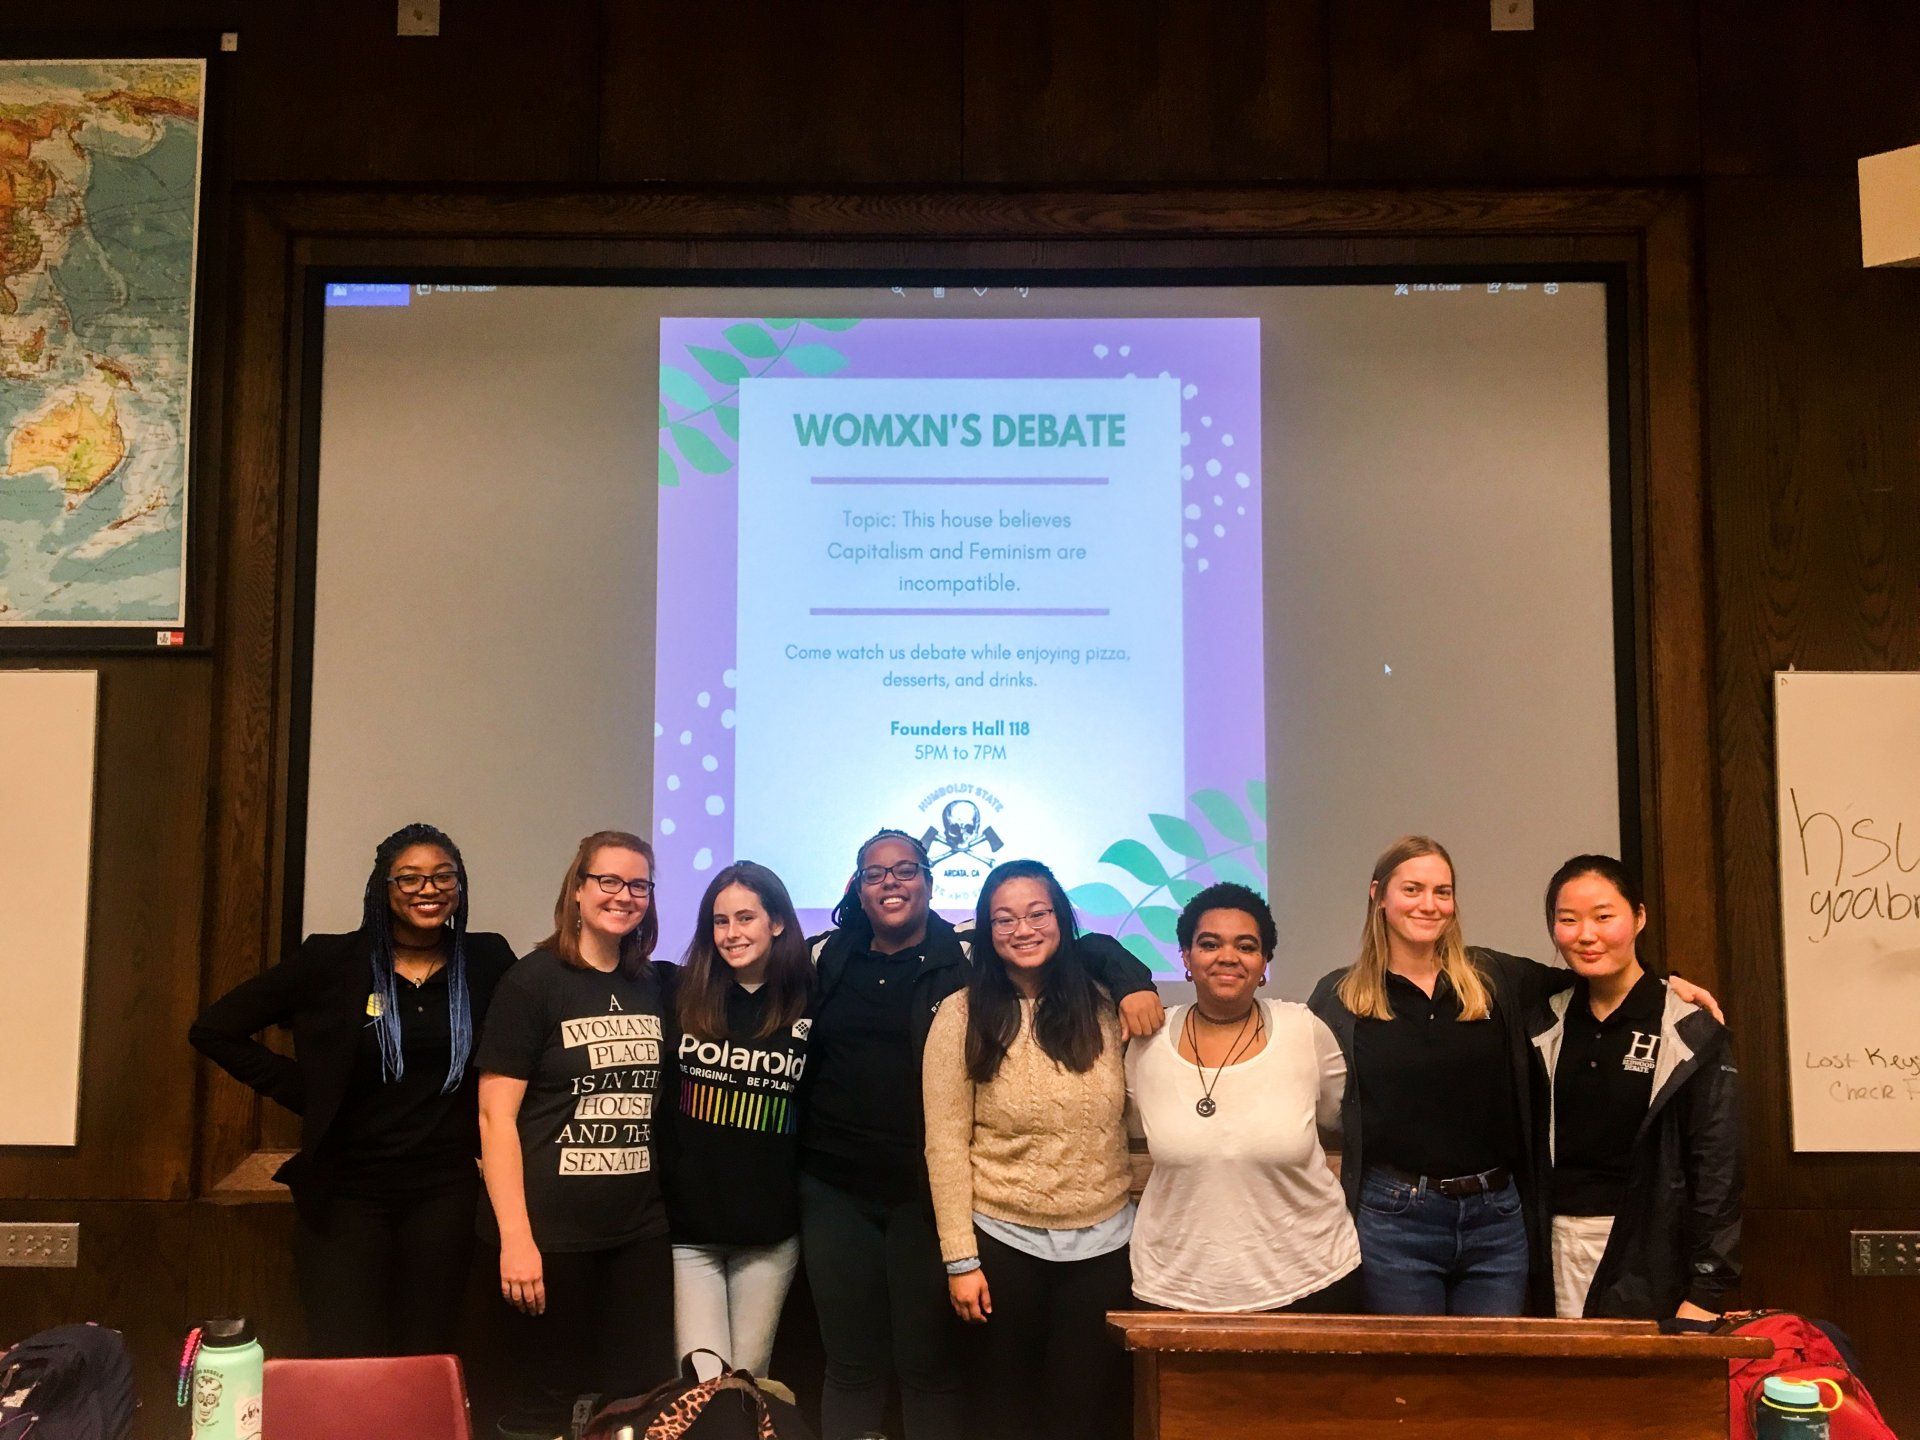 The women of HSU's debate club share smiles after an intense debate over the incompatibility of capitalism and feminism on March 6. | Photo by Christina Samoy.